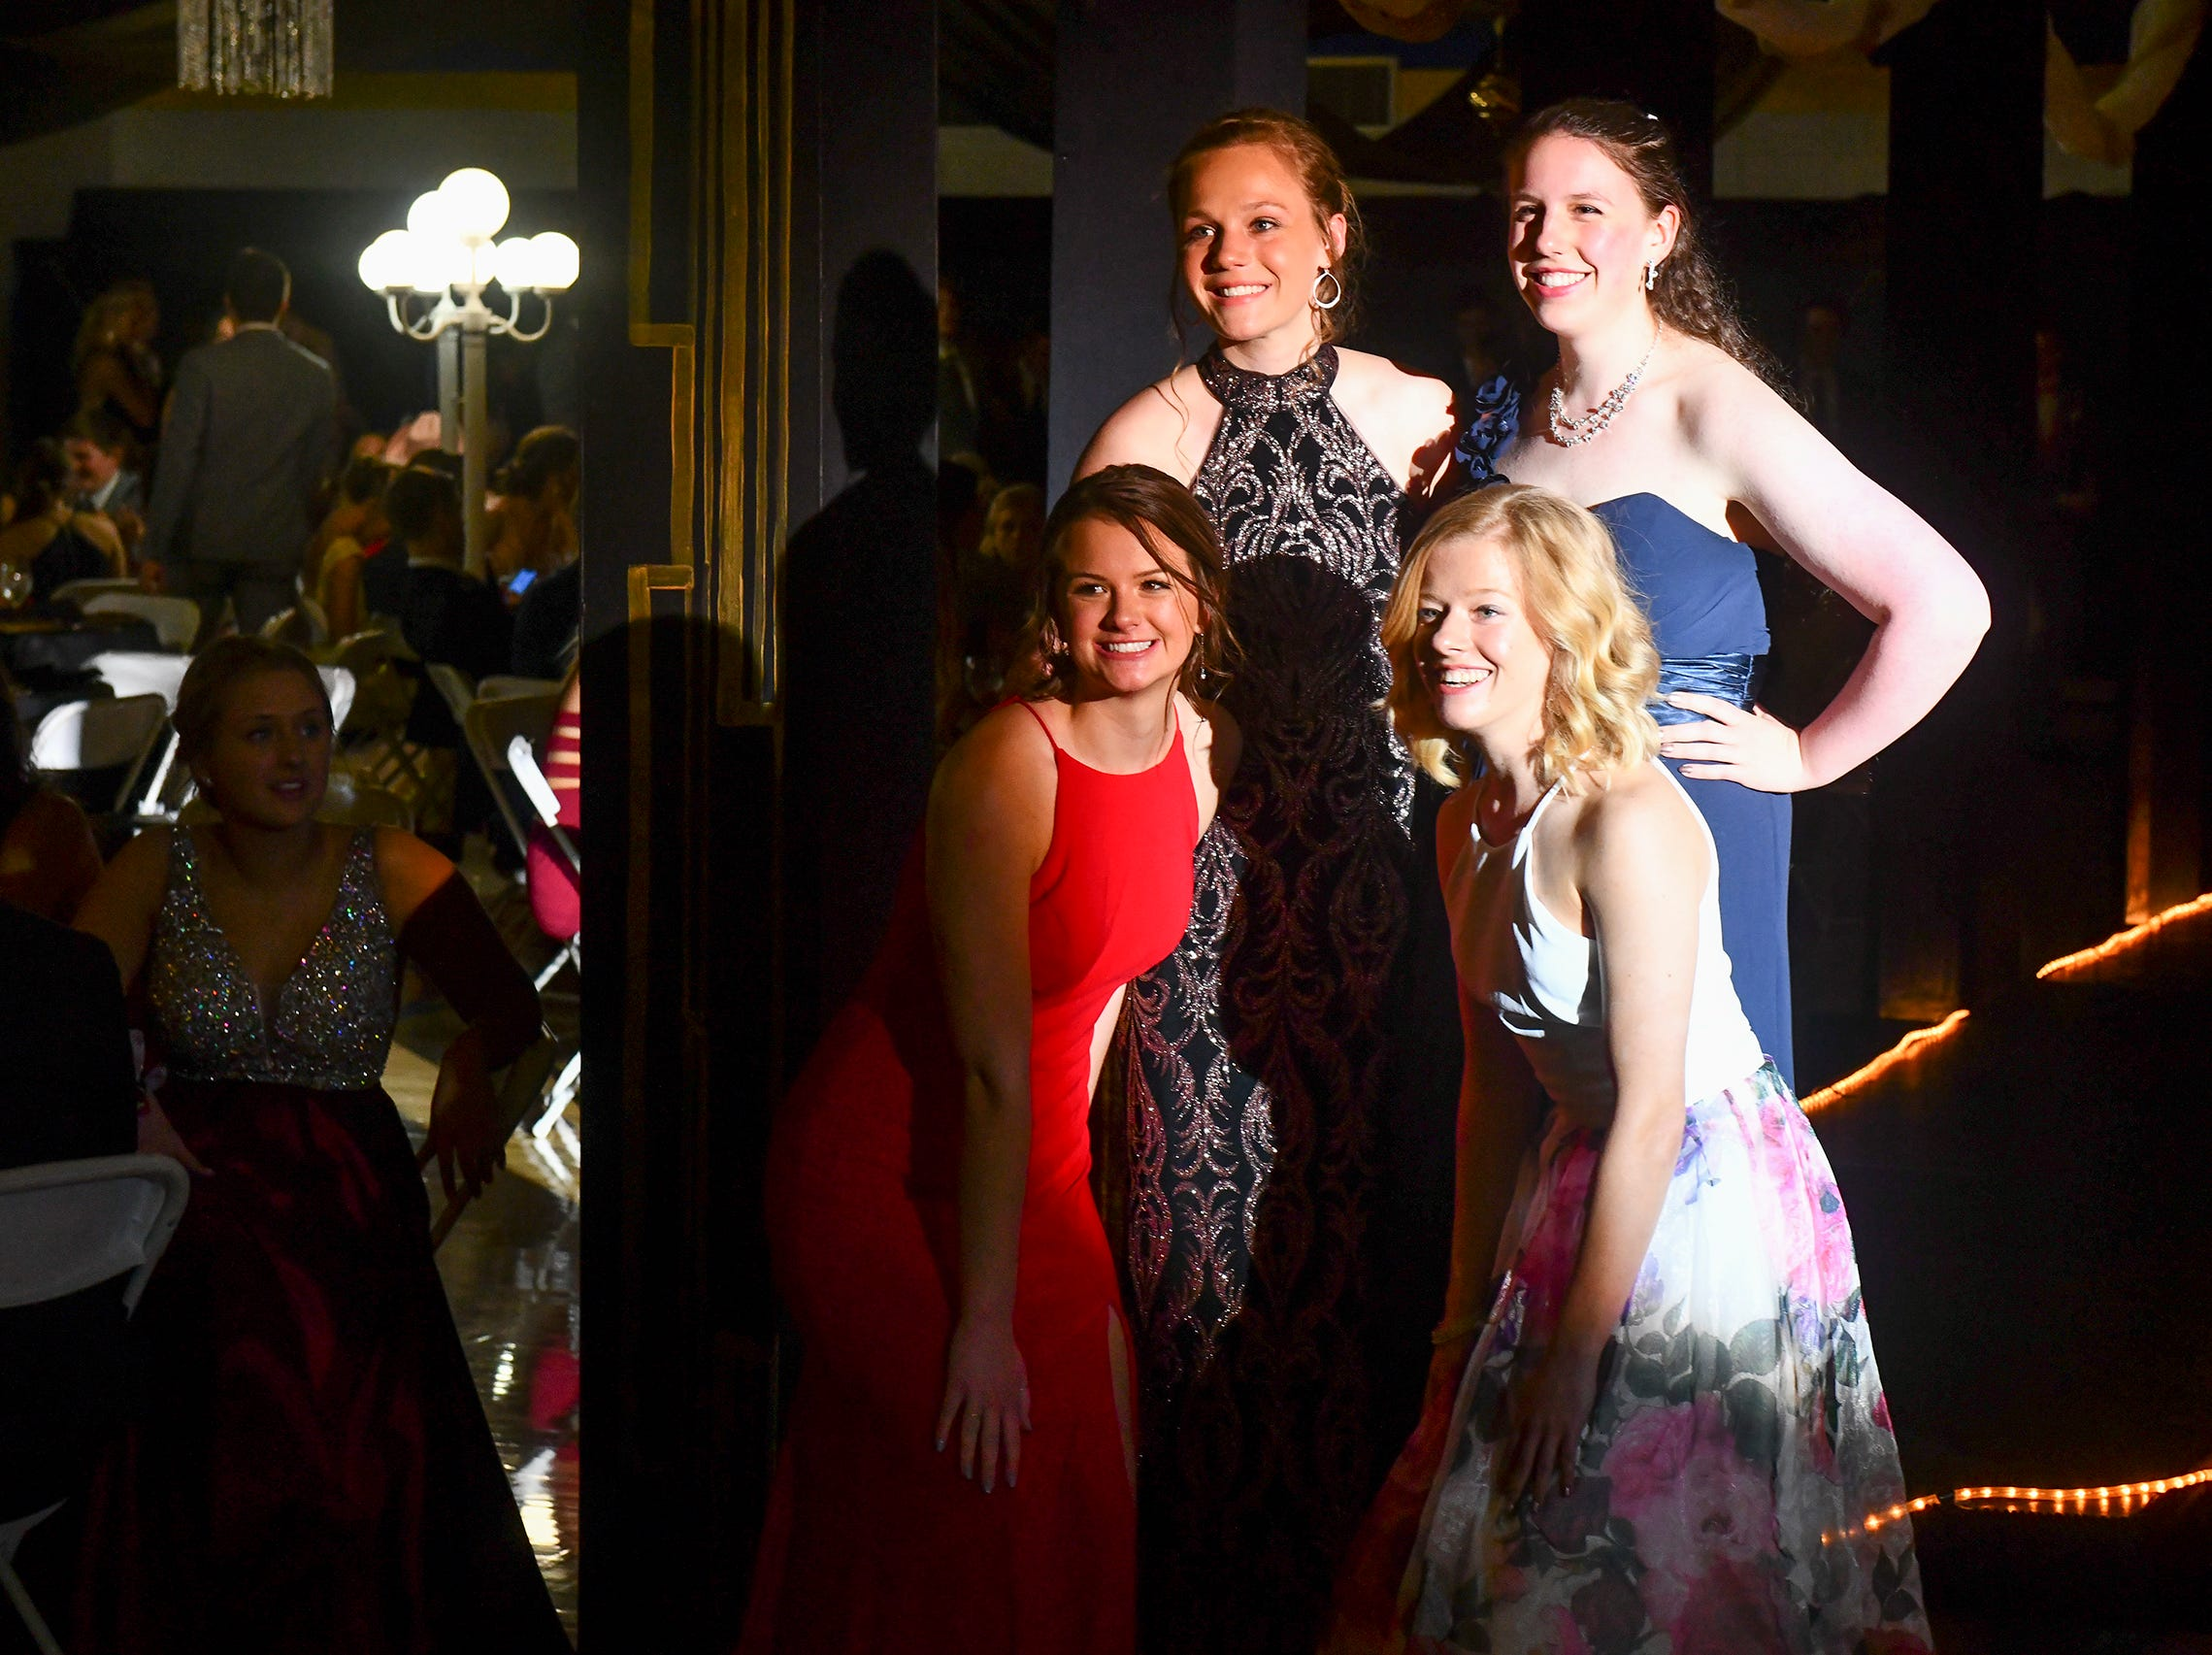 Students pose for photos during prom grand march Saturday, May 4, at Cathedral High School in St. Cloud.